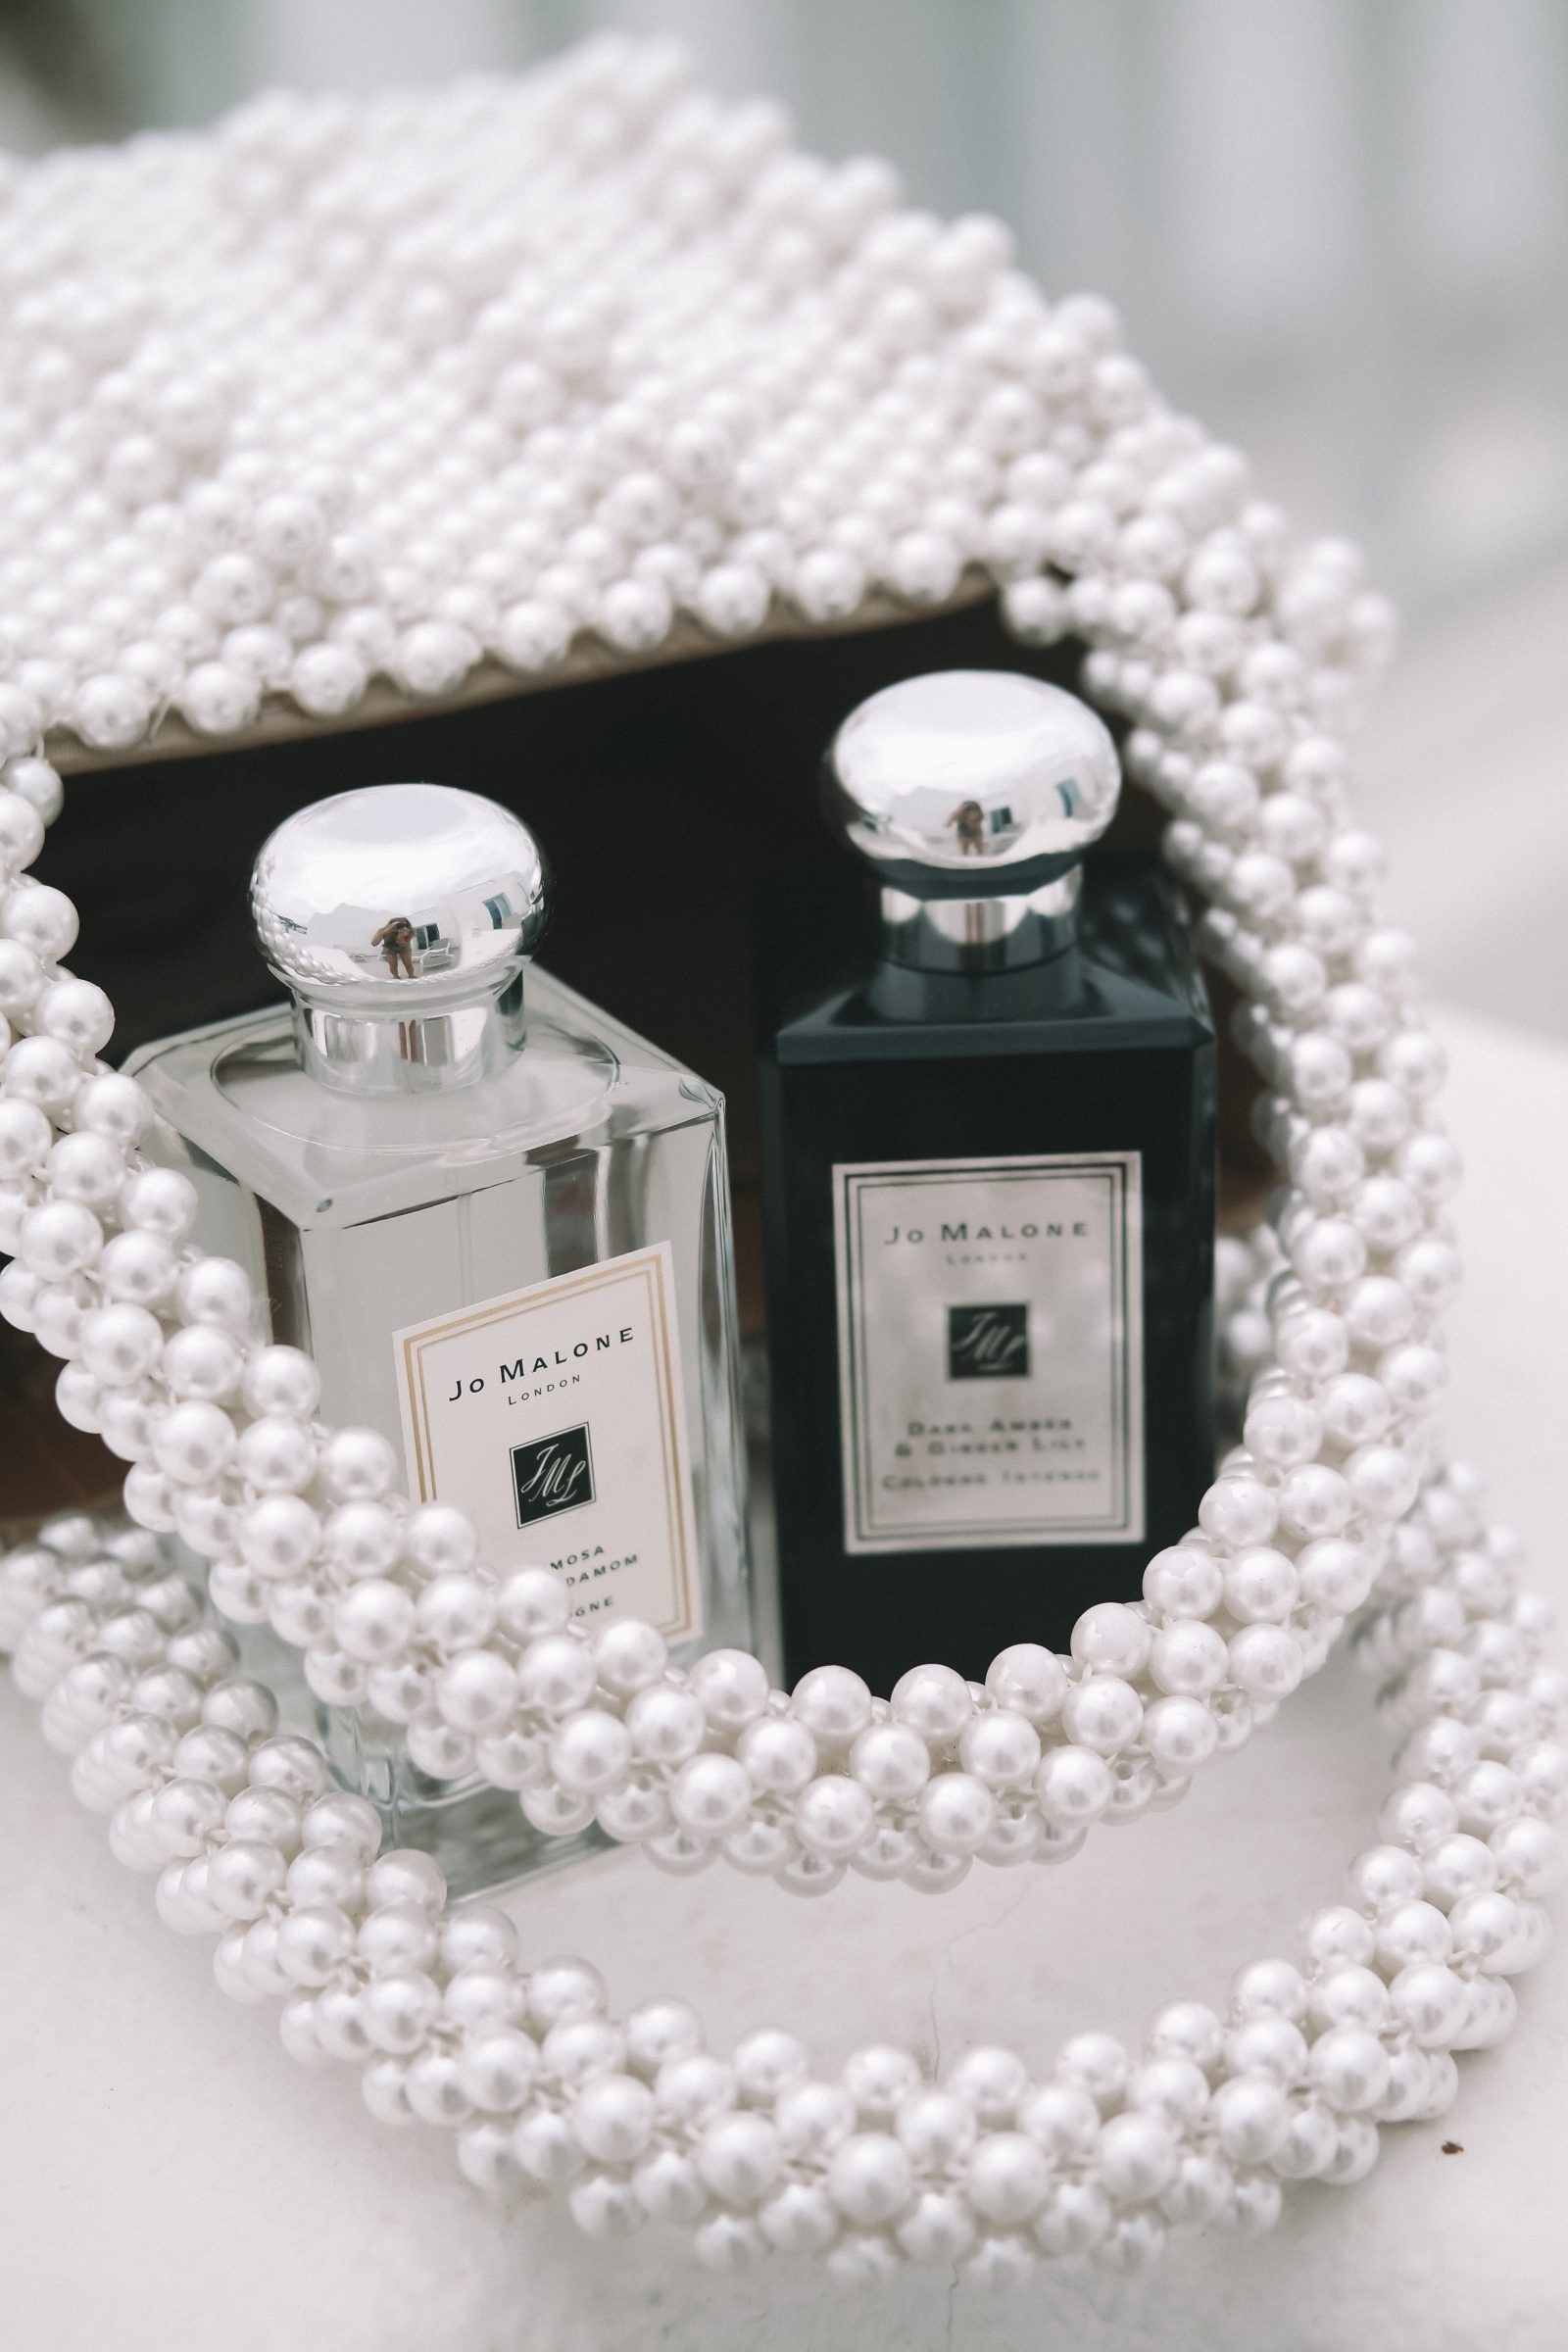 Jo Malone Wedding Scenting - Dark Amber & Ginger Lily